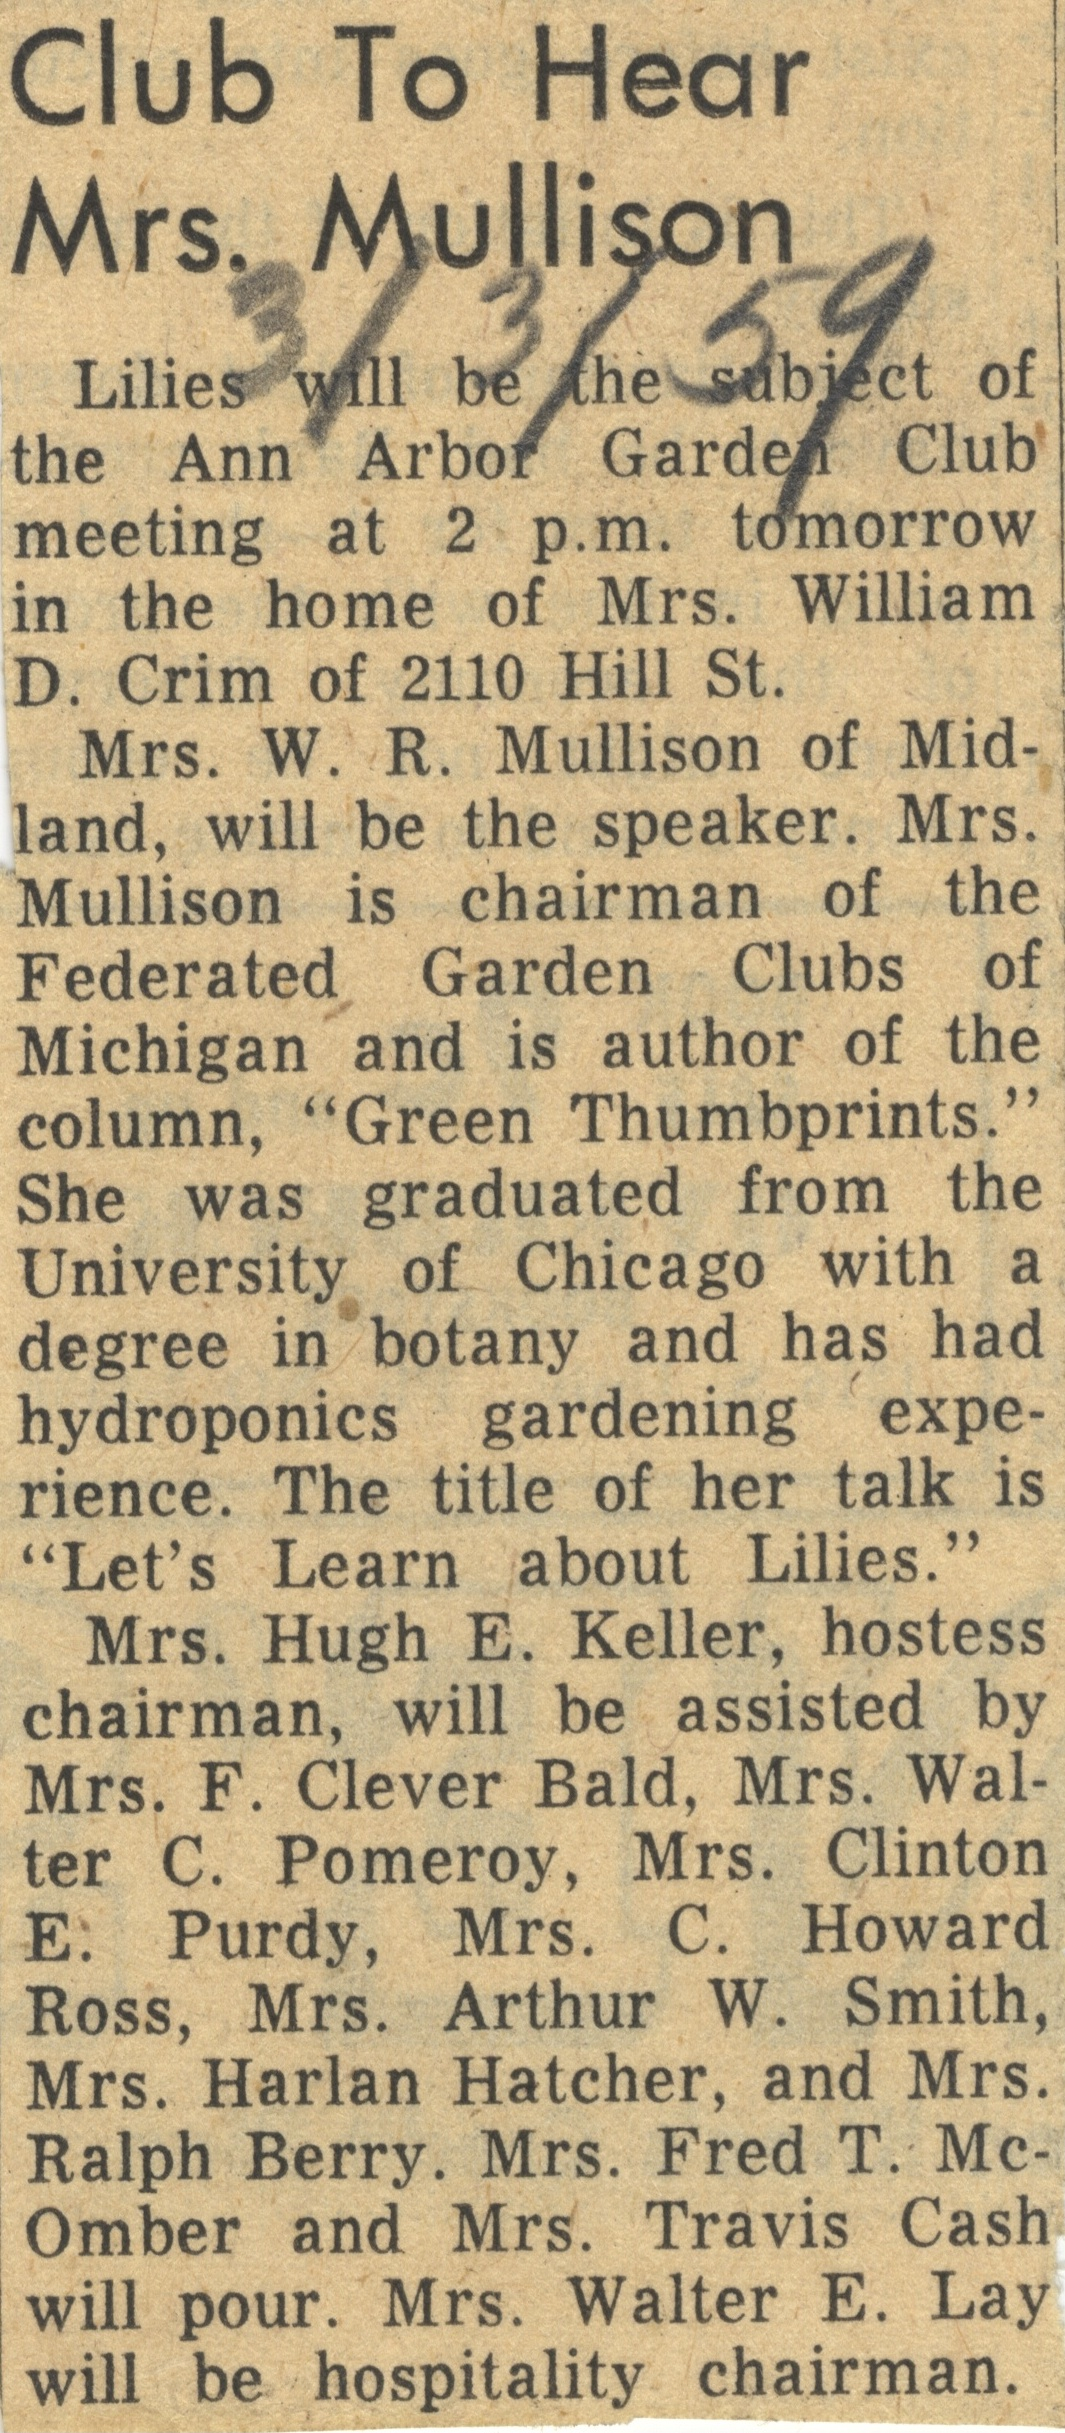 Club To Hear Mrs. Mullison image